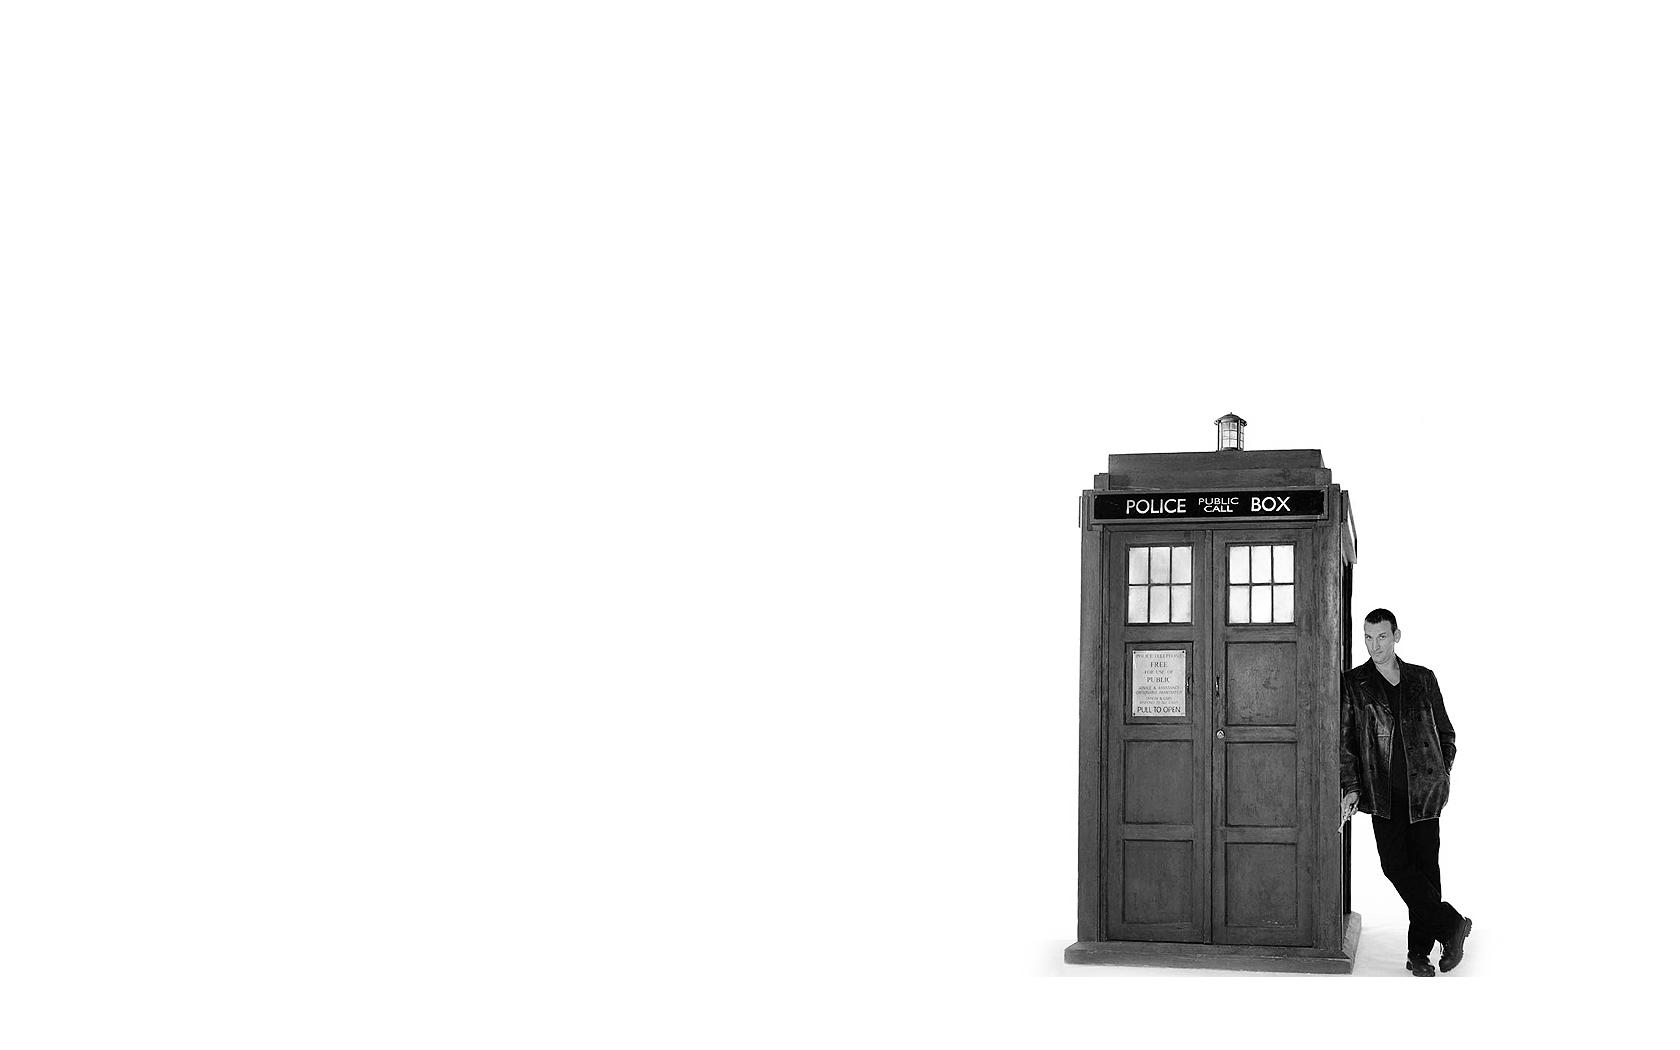 Doctor Who Wallpaper 001